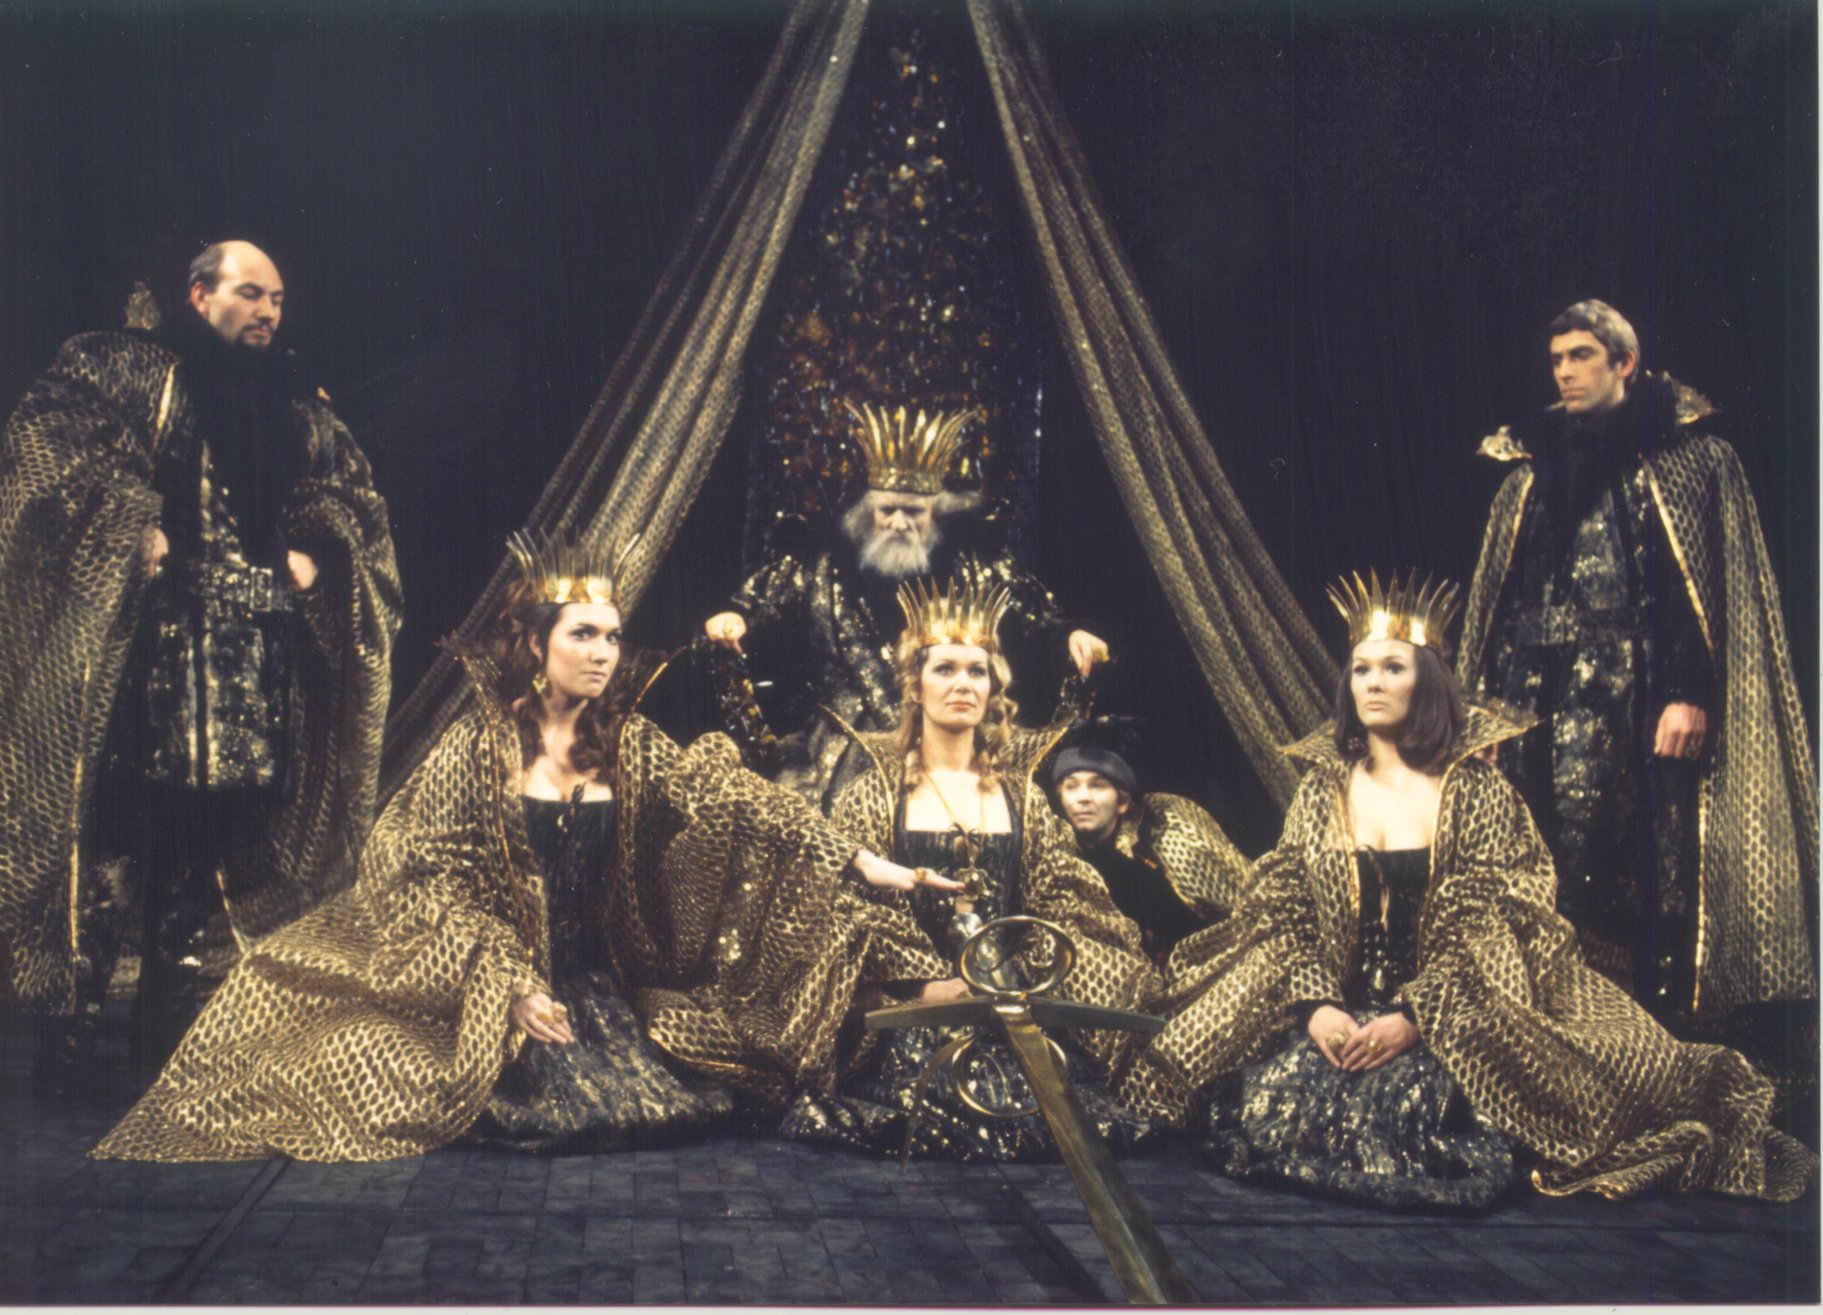 Three women in gold kneel in front of a king on his throne.